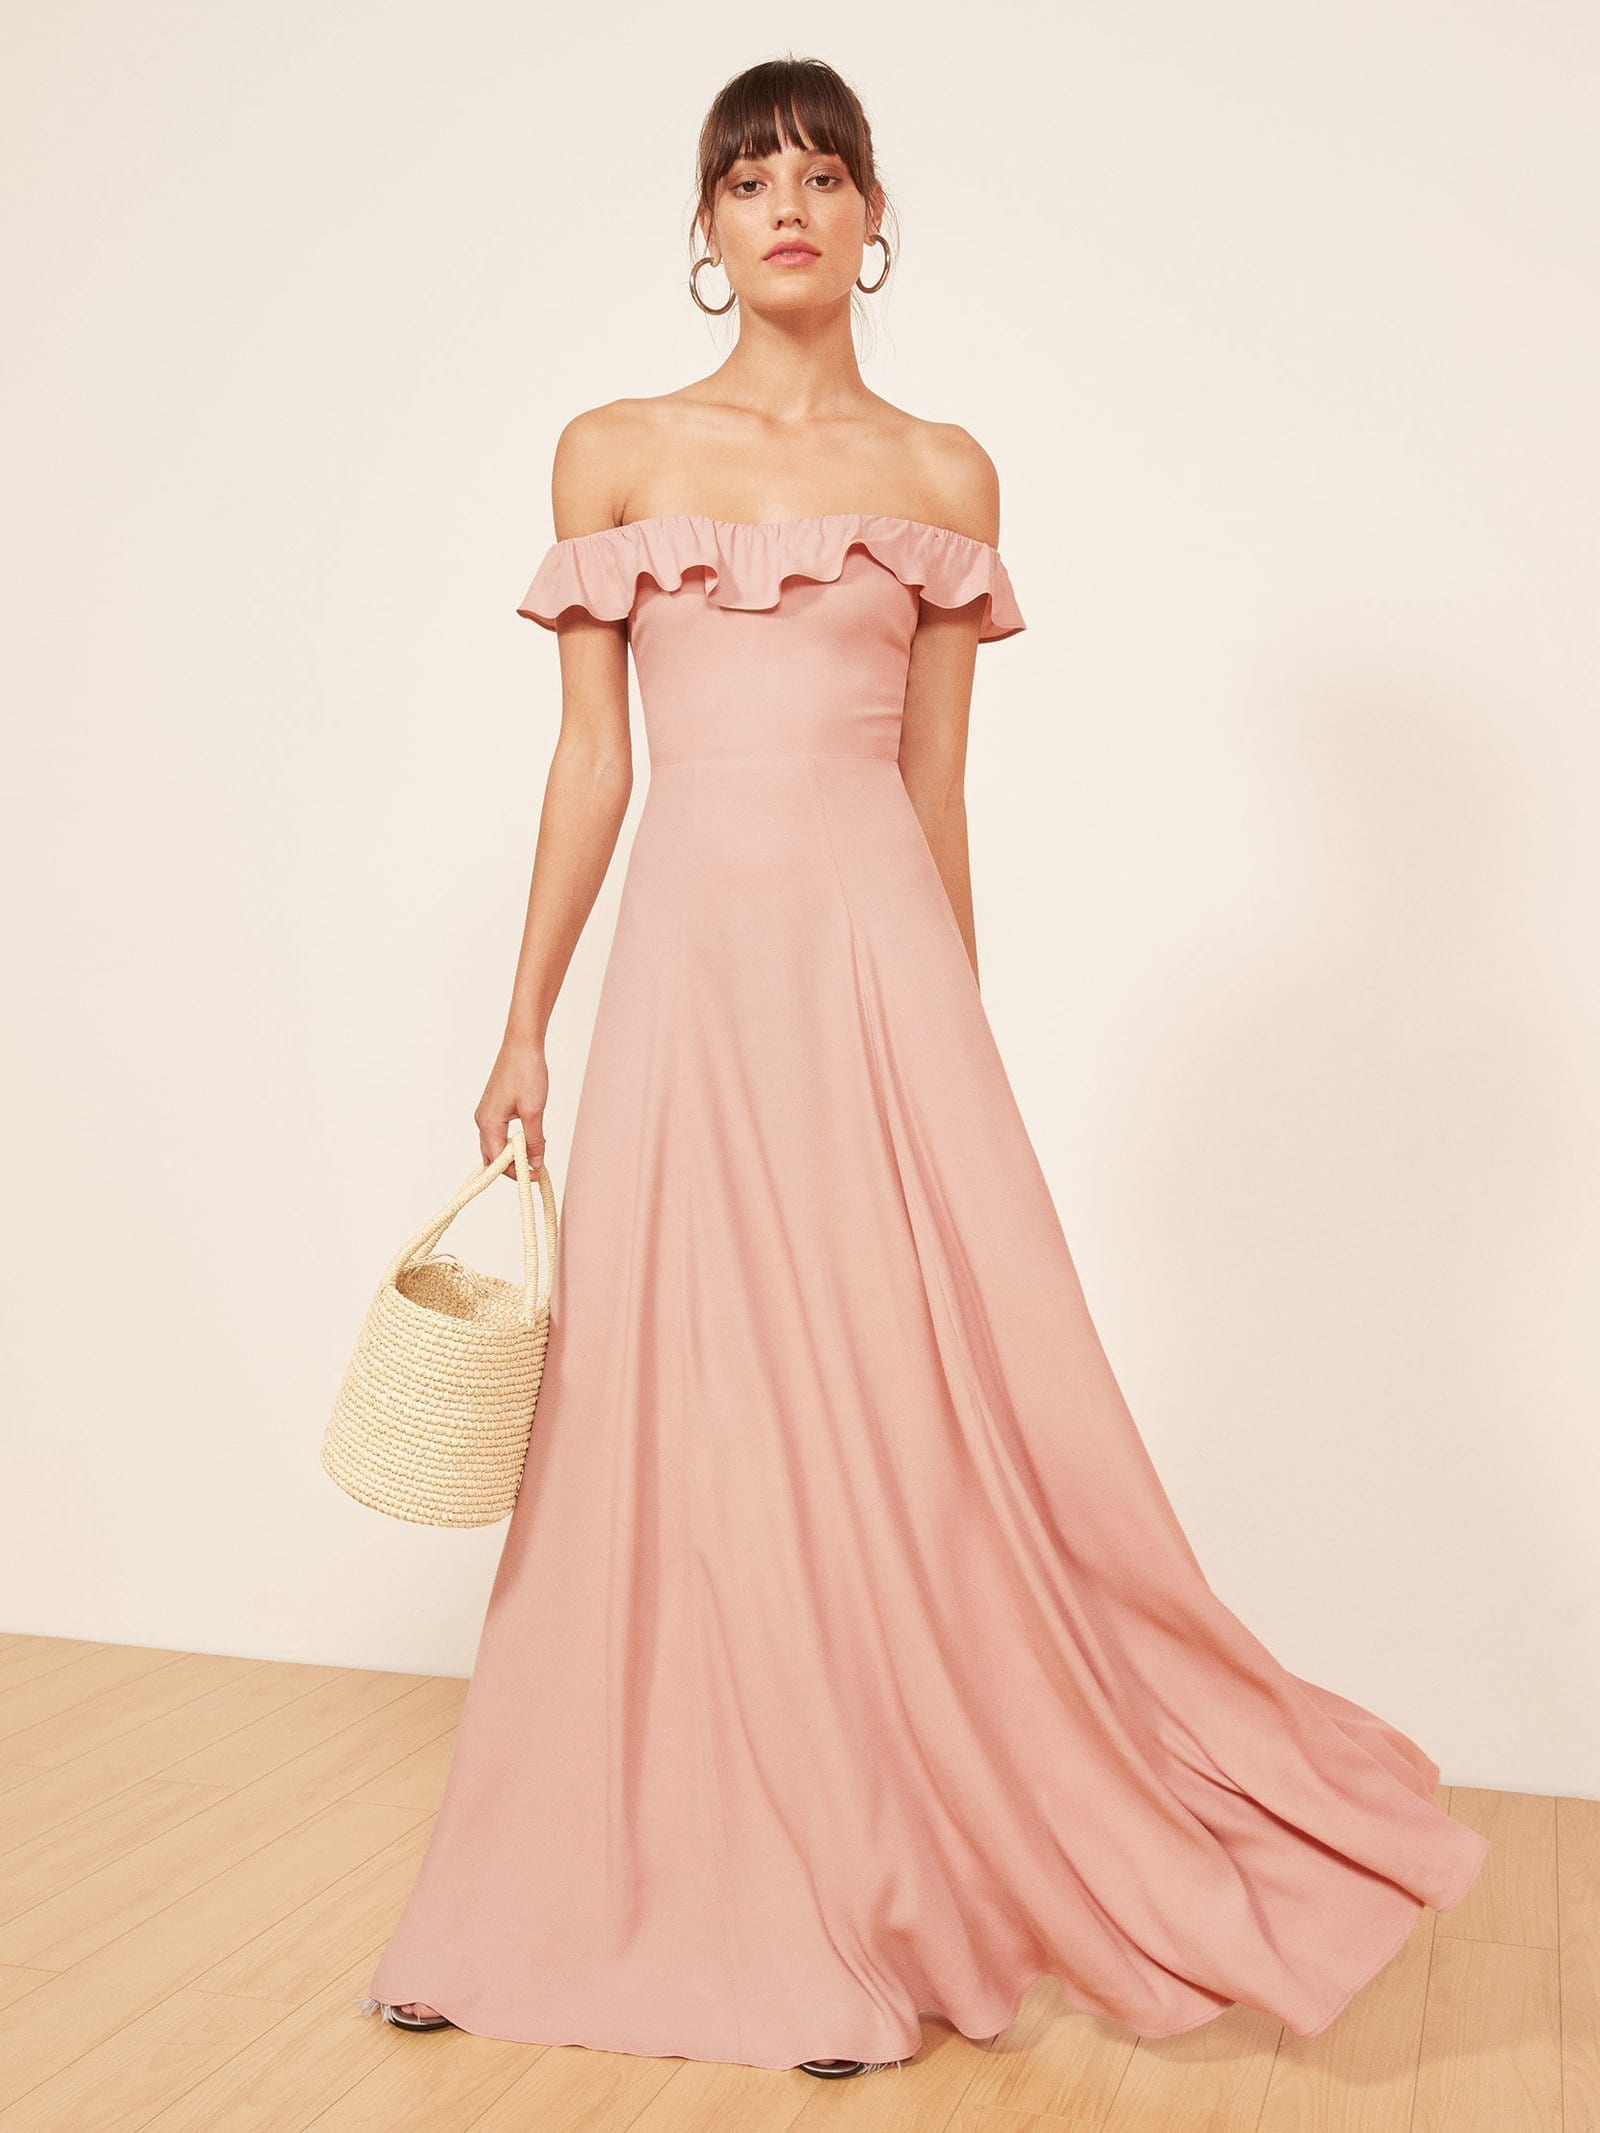 THEREFORMATION Verbena Blush Dress